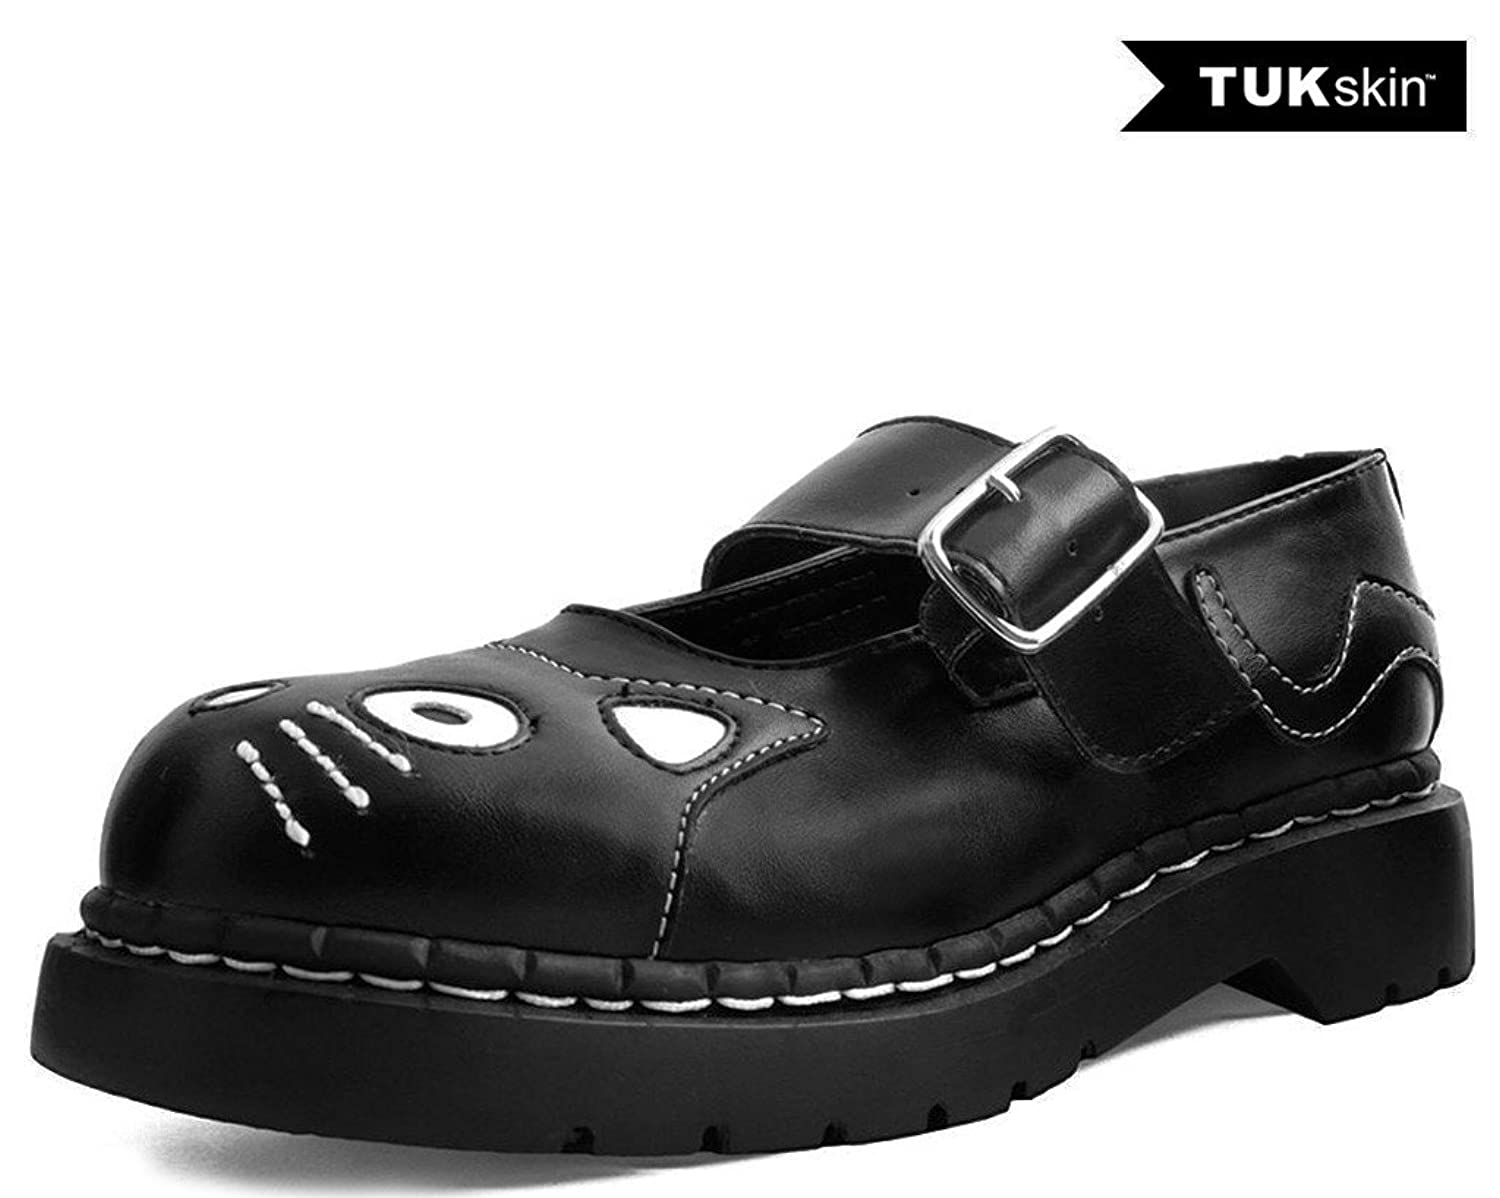 T.U.K...... Shoes T2260 Womens Vegan Mary Janes, Black TUKskin Kitty Mary Jane B076HXNHS1 US: Womens 8